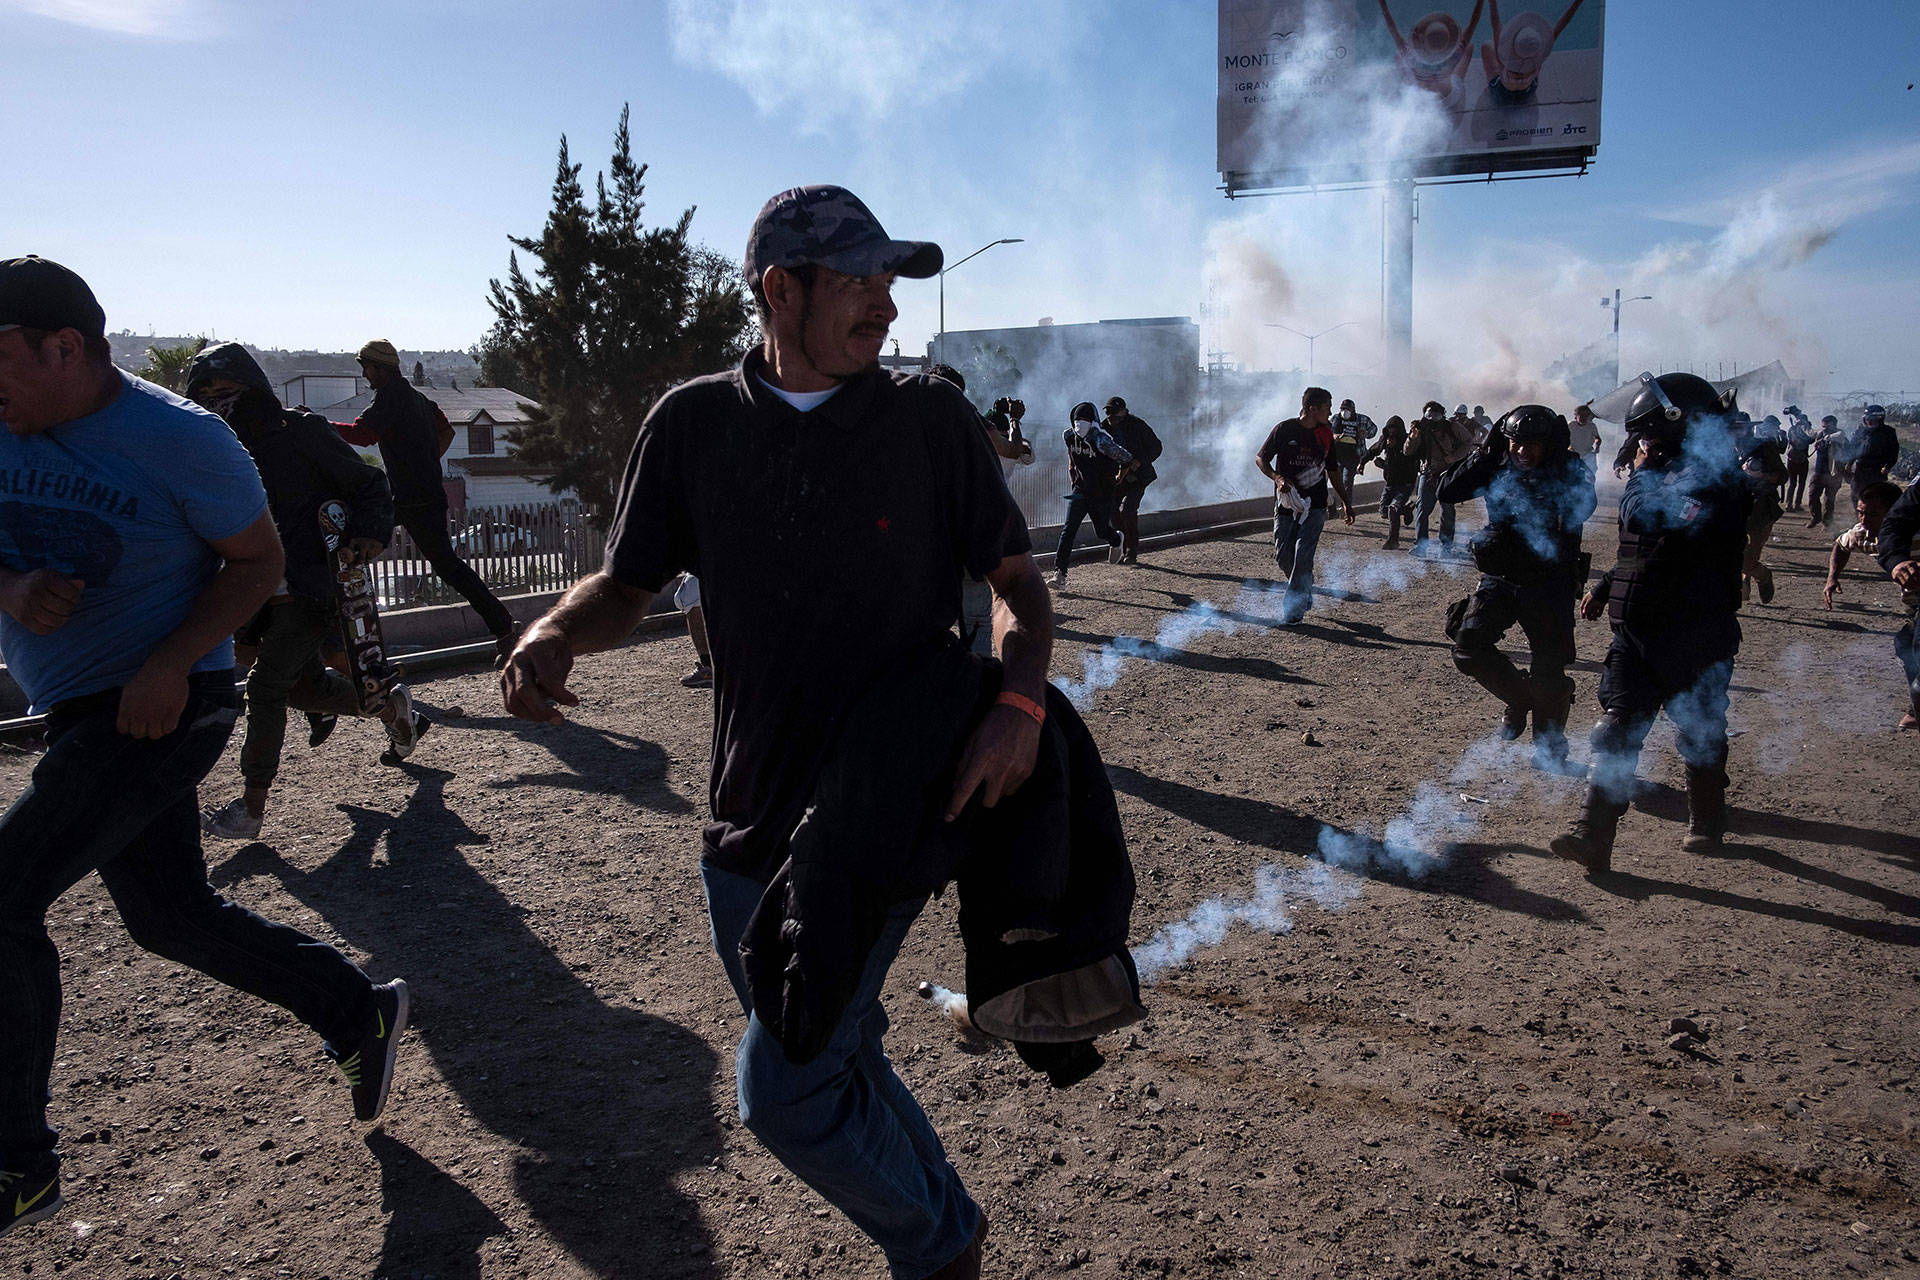 Central American migrants run along the Tijuana River near the El Chaparral border crossing in Tijuana, Mexico, after U.S. border agents launched tear gas to disperse them on Nov. 25, 2018. GUILLERMO ARIAS/AFP/Getty Images